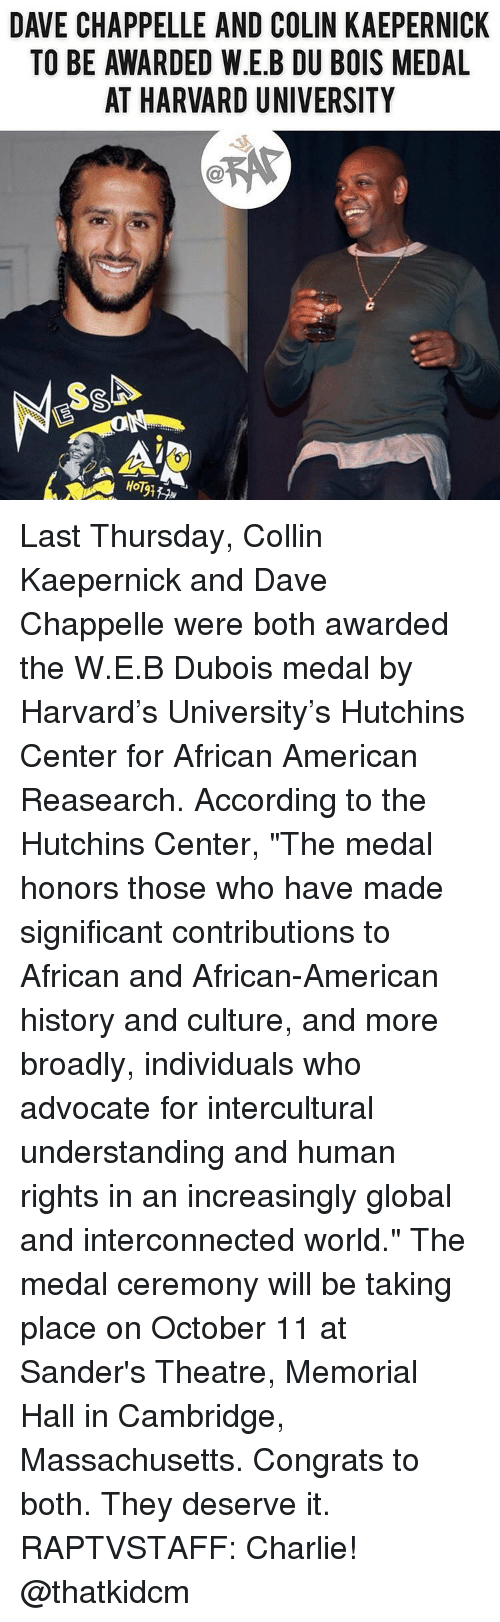 """Dave Chappelle: DAVE CHAPPELLE AND COLIN KAEPERNICK  TO BE AWARDED W.E.B DU BOIS MEDAL  AT HARVARD UNIVERSITY  HoT Last Thursday, Collin Kaepernick and Dave Chappelle were both awarded the W.E.B Dubois medal by Harvard's University's Hutchins Center for African American Reasearch. According to the Hutchins Center, """"The medal honors those who have made significant contributions to African and African-American history and culture, and more broadly, individuals who advocate for intercultural understanding and human rights in an increasingly global and interconnected world."""" The medal ceremony will be taking place on October 11 at Sander's Theatre, Memorial Hall in Cambridge, Massachusetts. Congrats to both. They deserve it. RAPTVSTAFF: Charlie! @thatkidcm"""